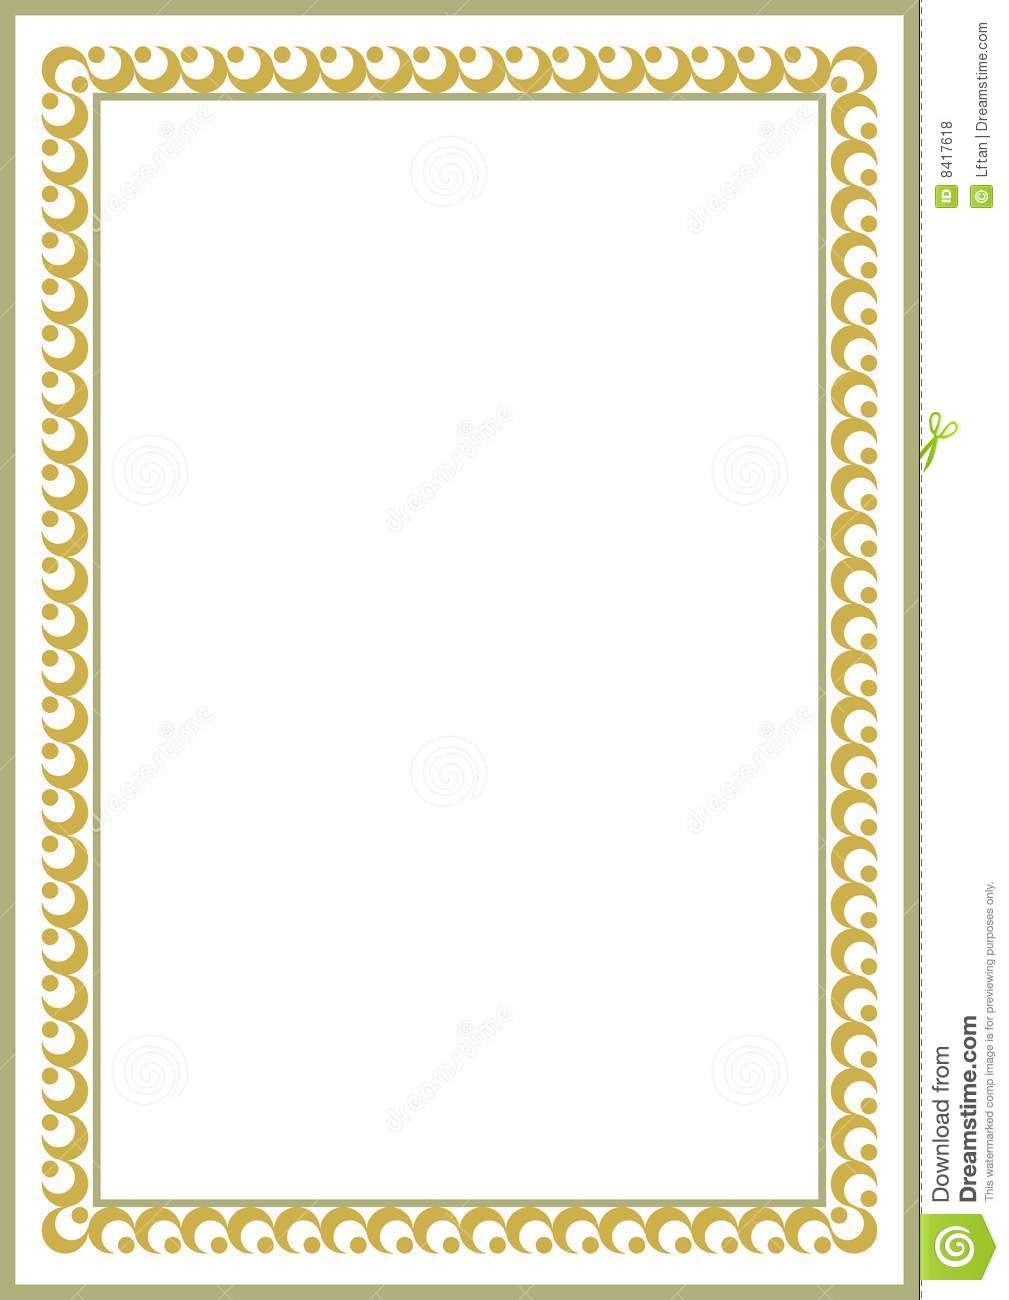 Certificate border royalty free stock photos image 8417618 royalty free stock photo download certificate border yadclub Choice Image